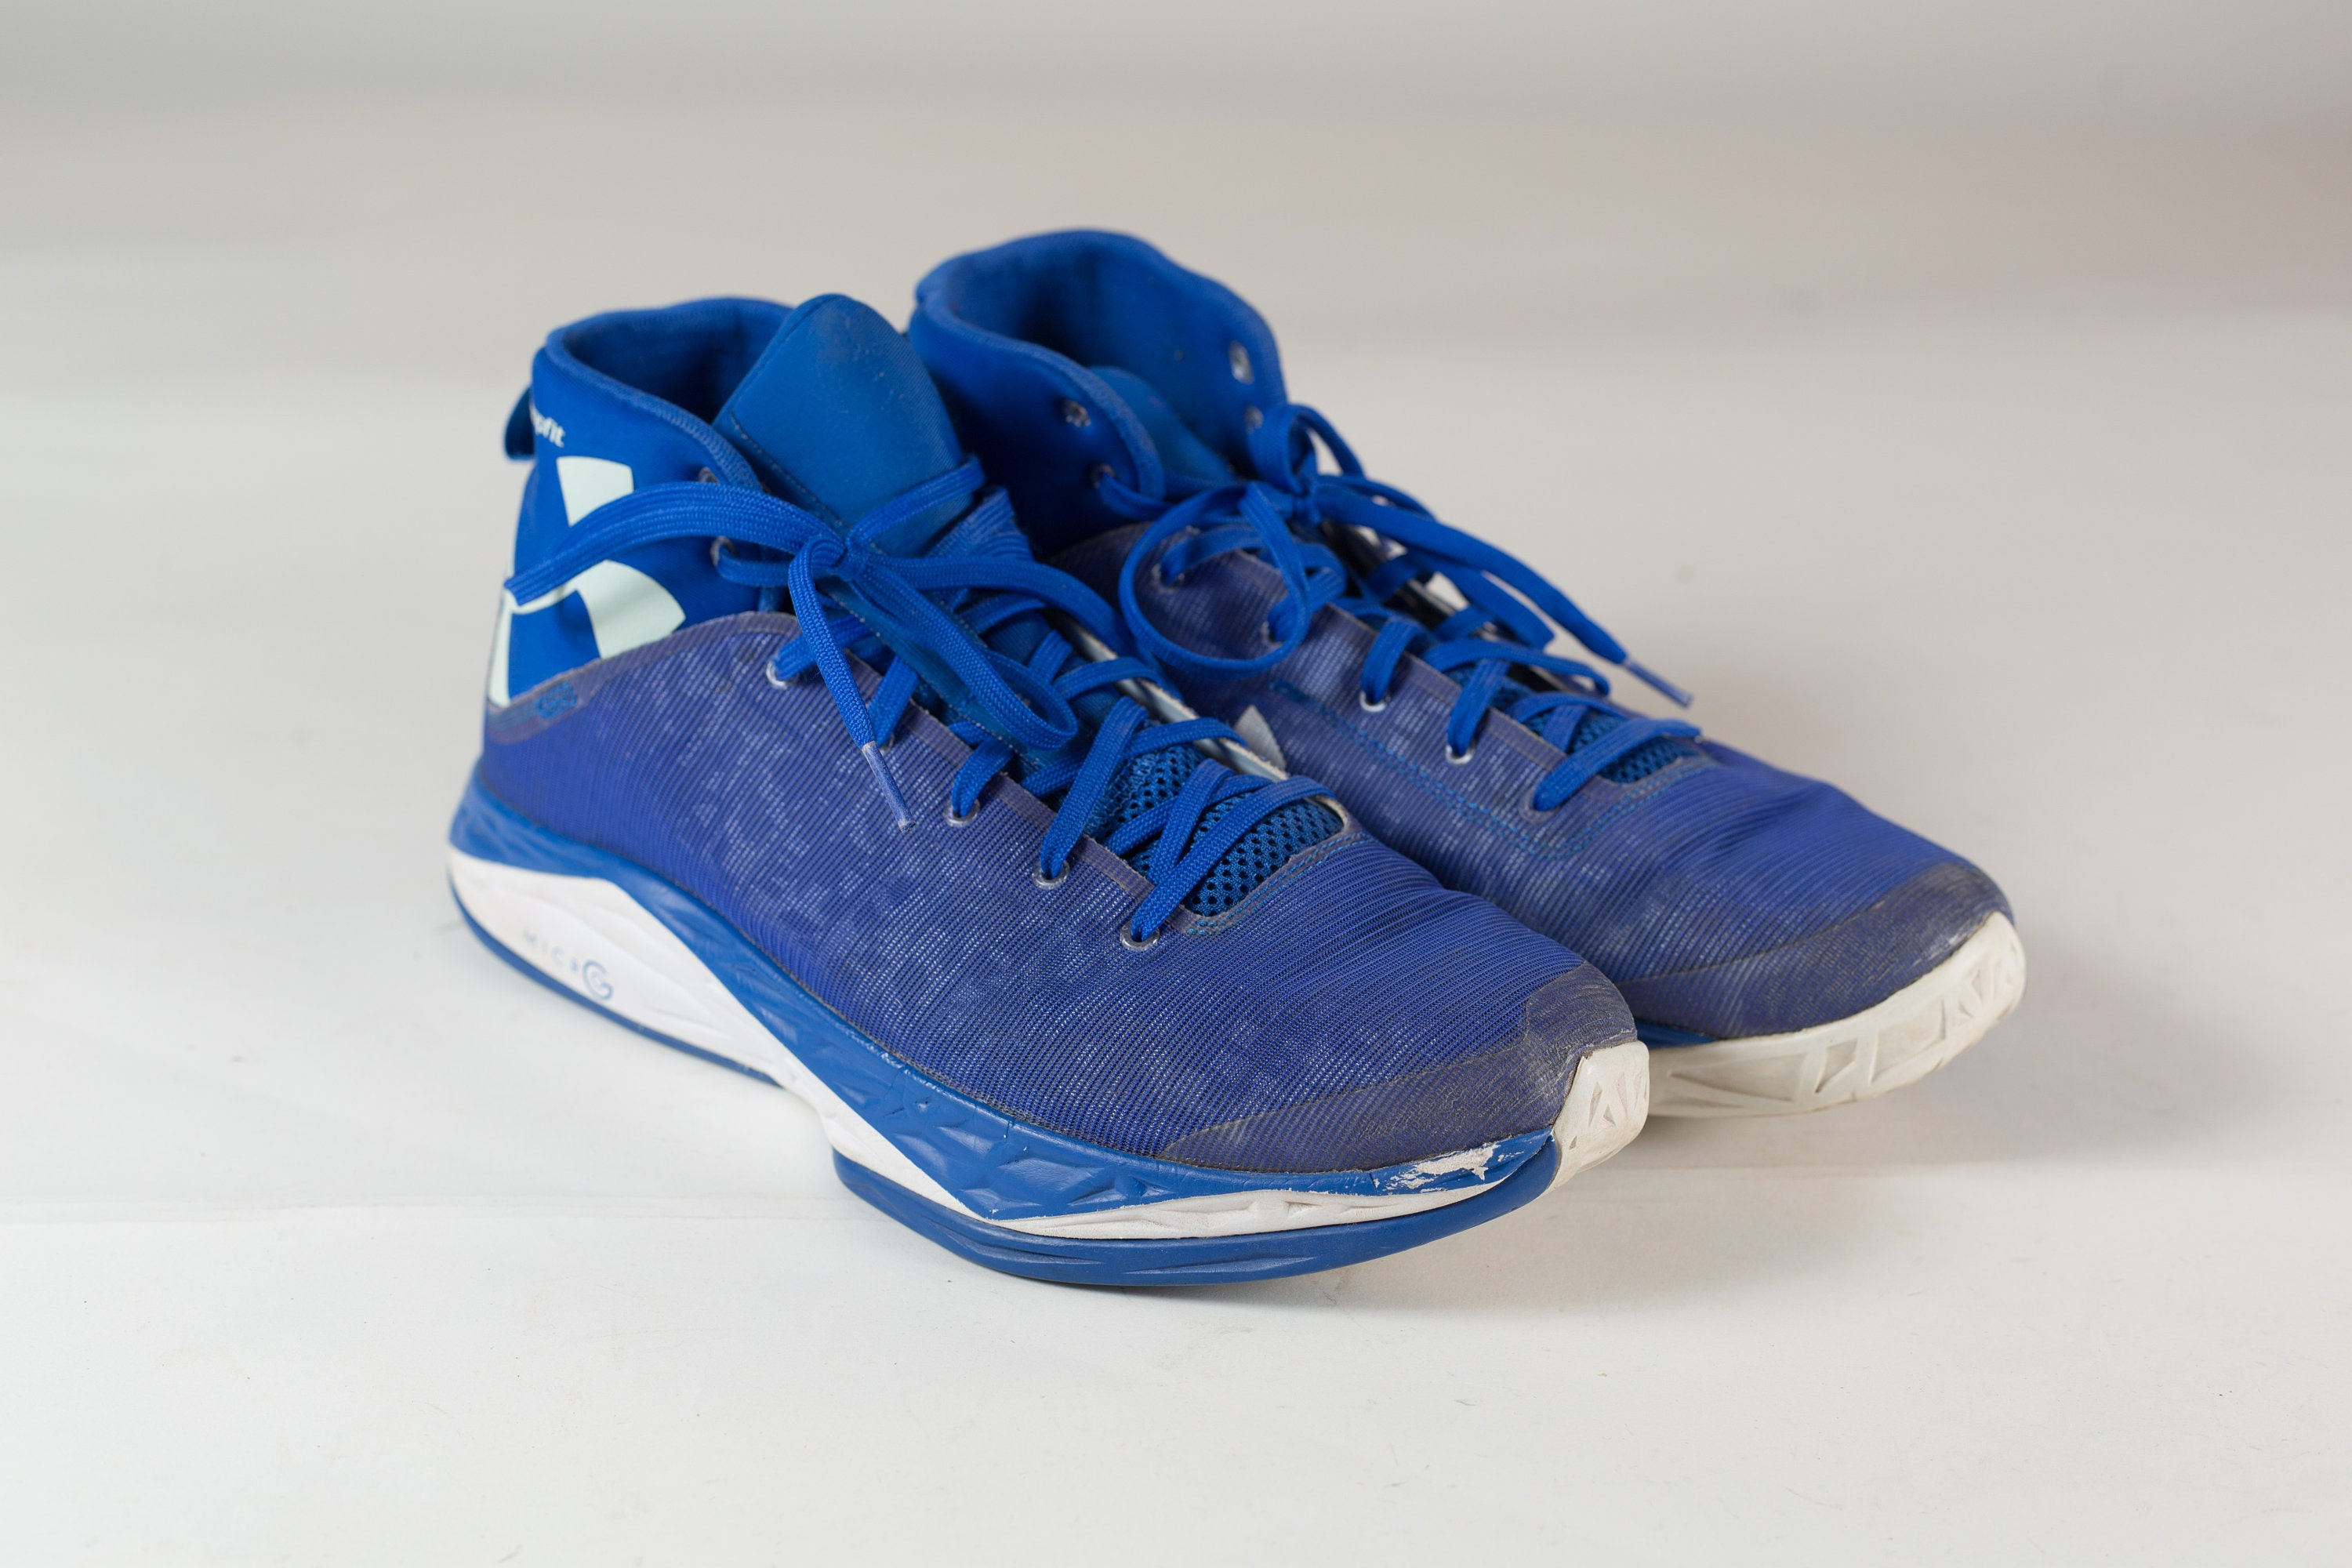 db419e006f Men's Blue Athletic Shoes - Blue Under Armour Basketball Sneaker ...